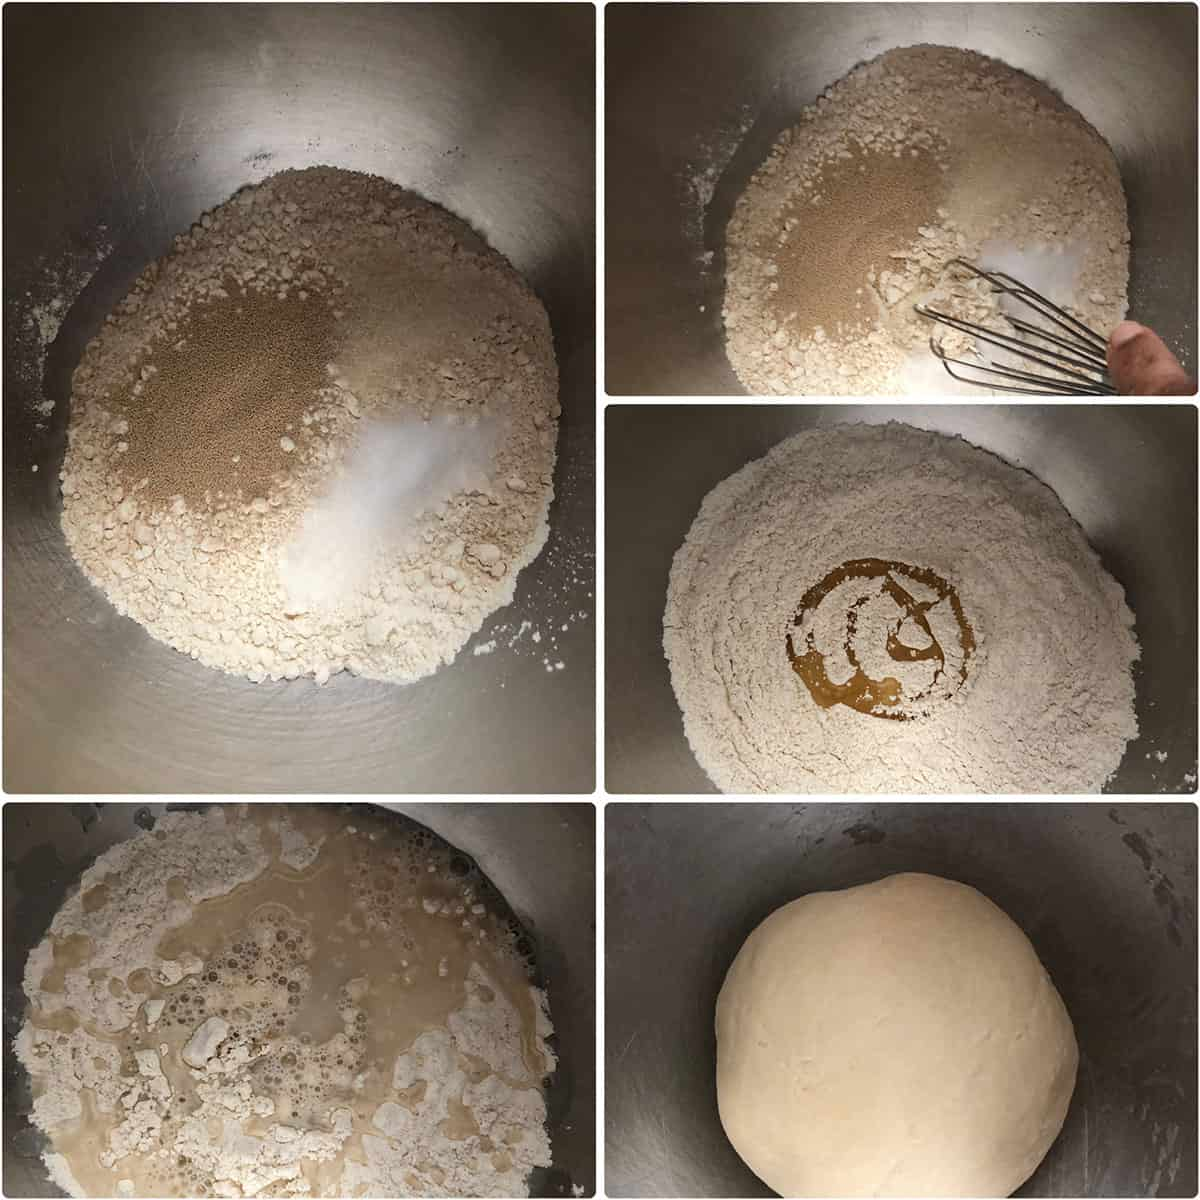 Step by step photos of dry ingredients added to a bowl and mixed with water and oil until smooth dough forms